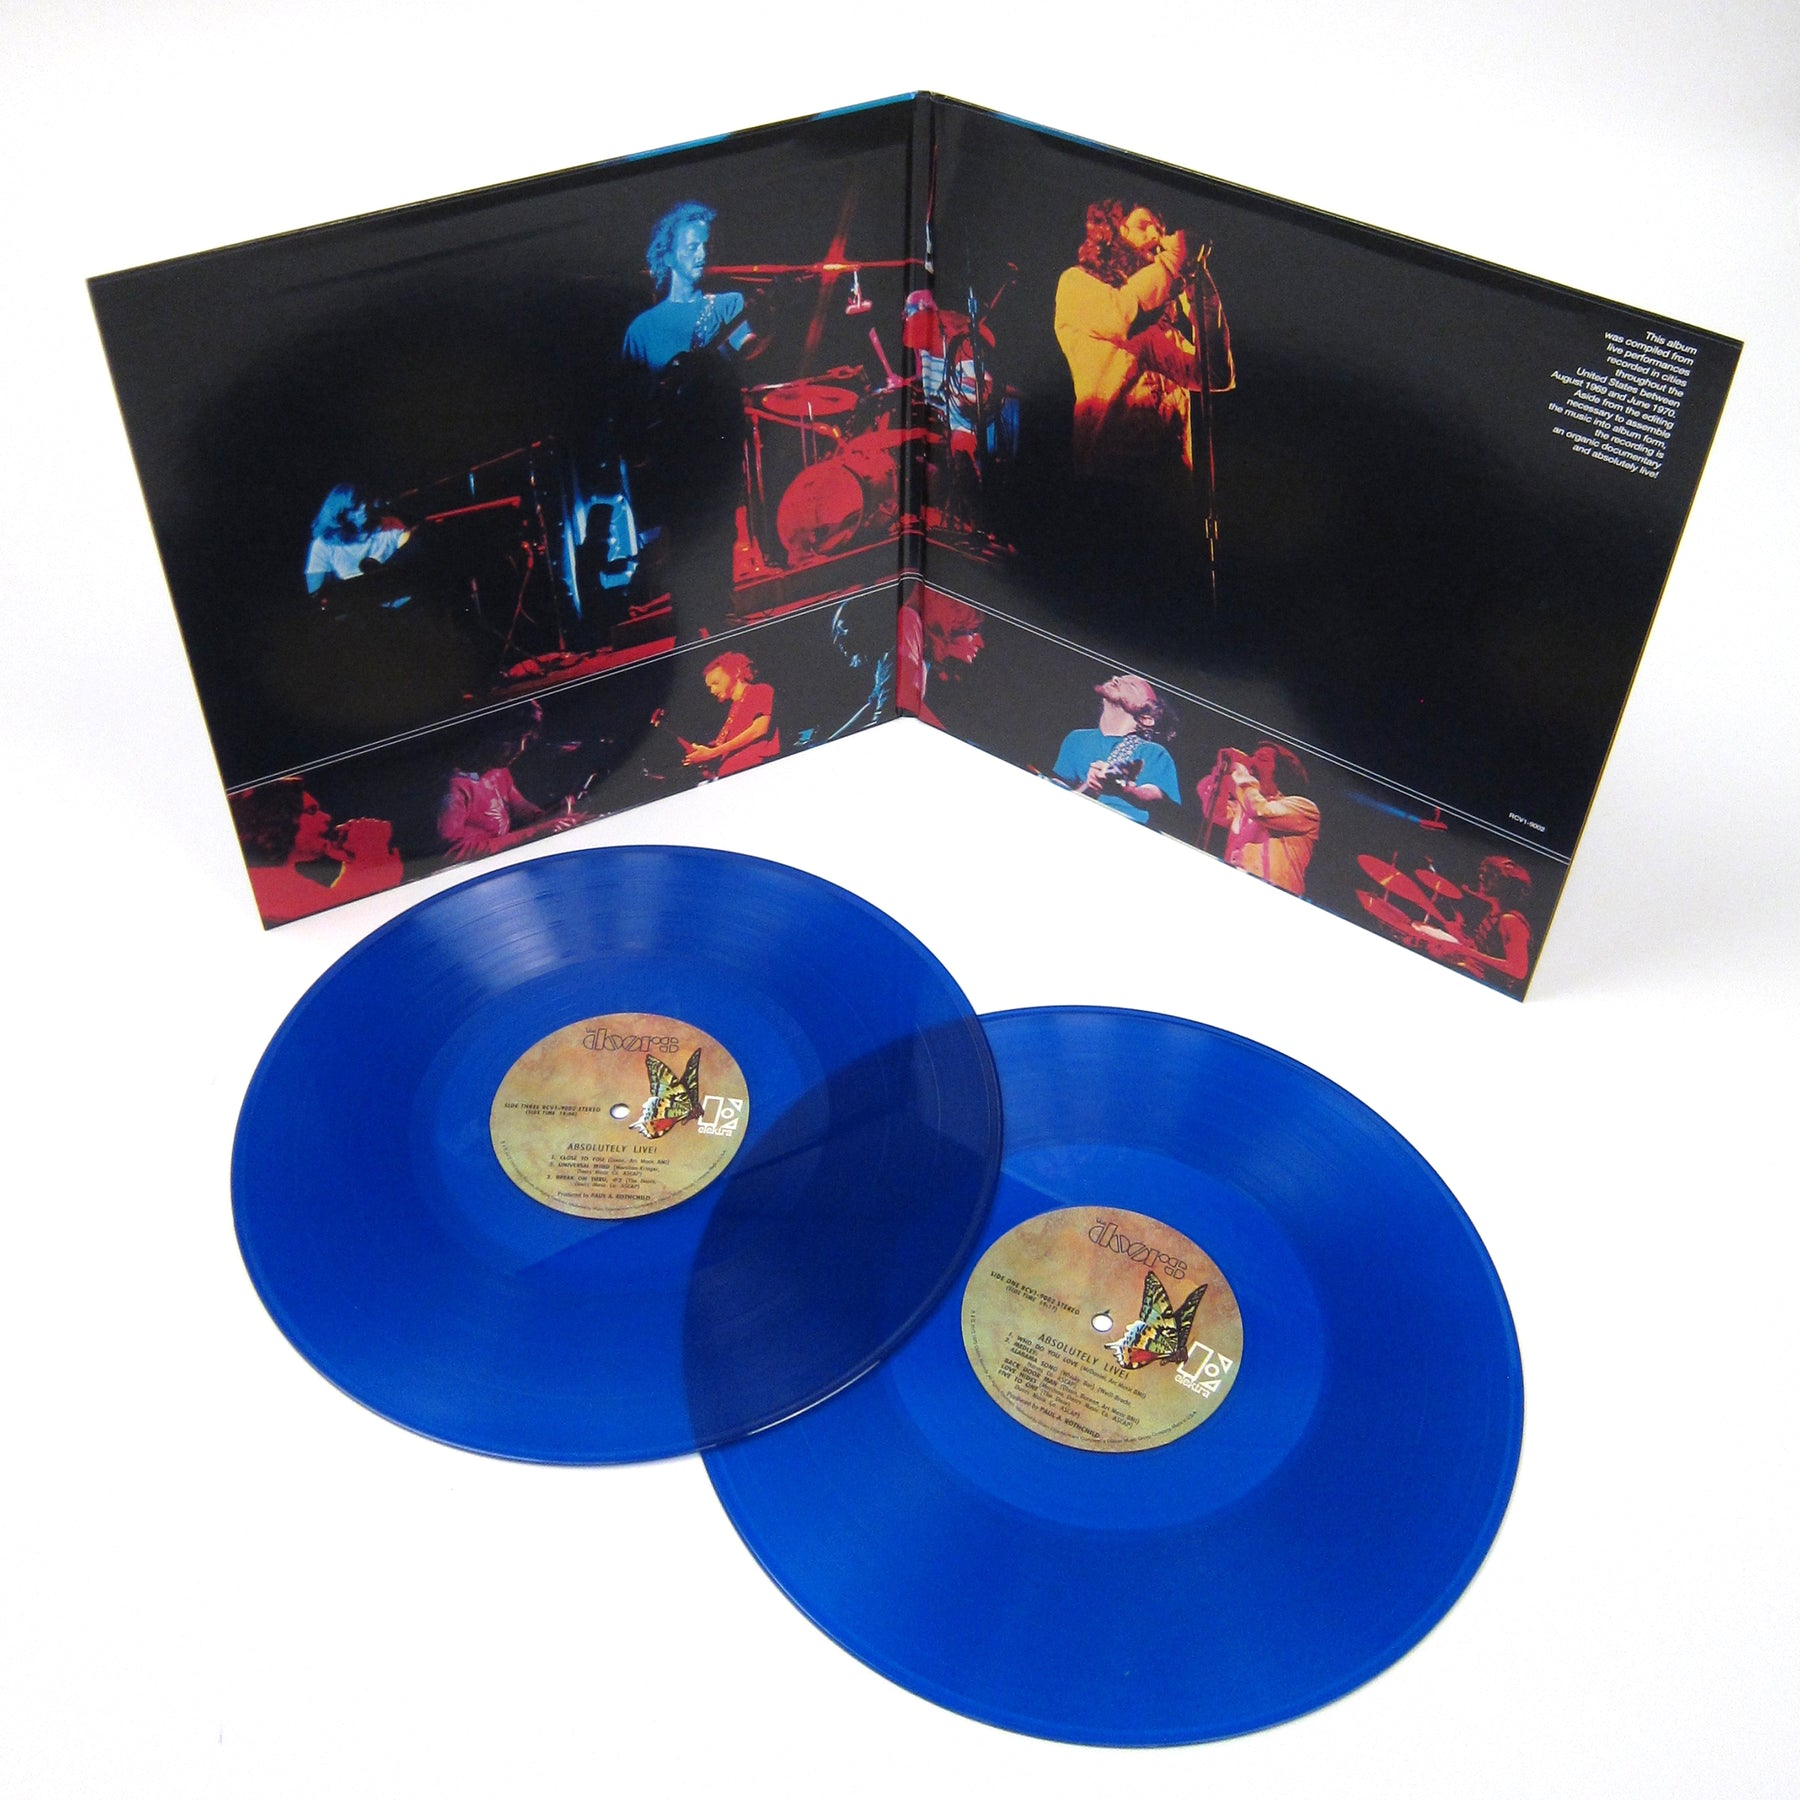 ... The Doors Absolutely Live (Colored Vinyl) Vinyl LP (Record Store Day) ...  sc 1 st  Turntable Lab & The Doors: Absolutely Live (Blue Vinyl) Vinyl LP (Record Store Day ...